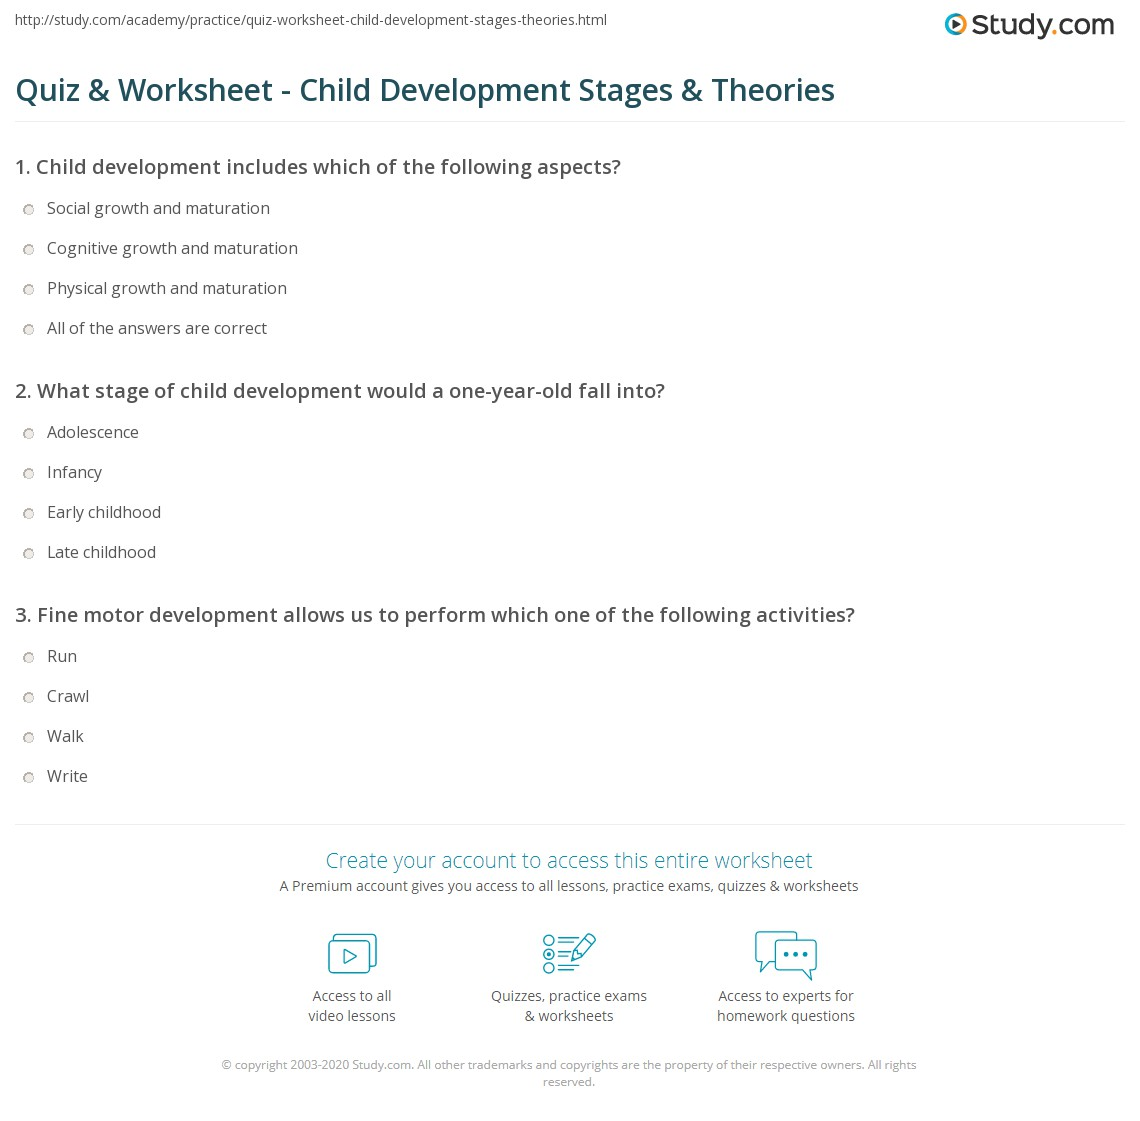 Child Development Theorists Worksheet 2